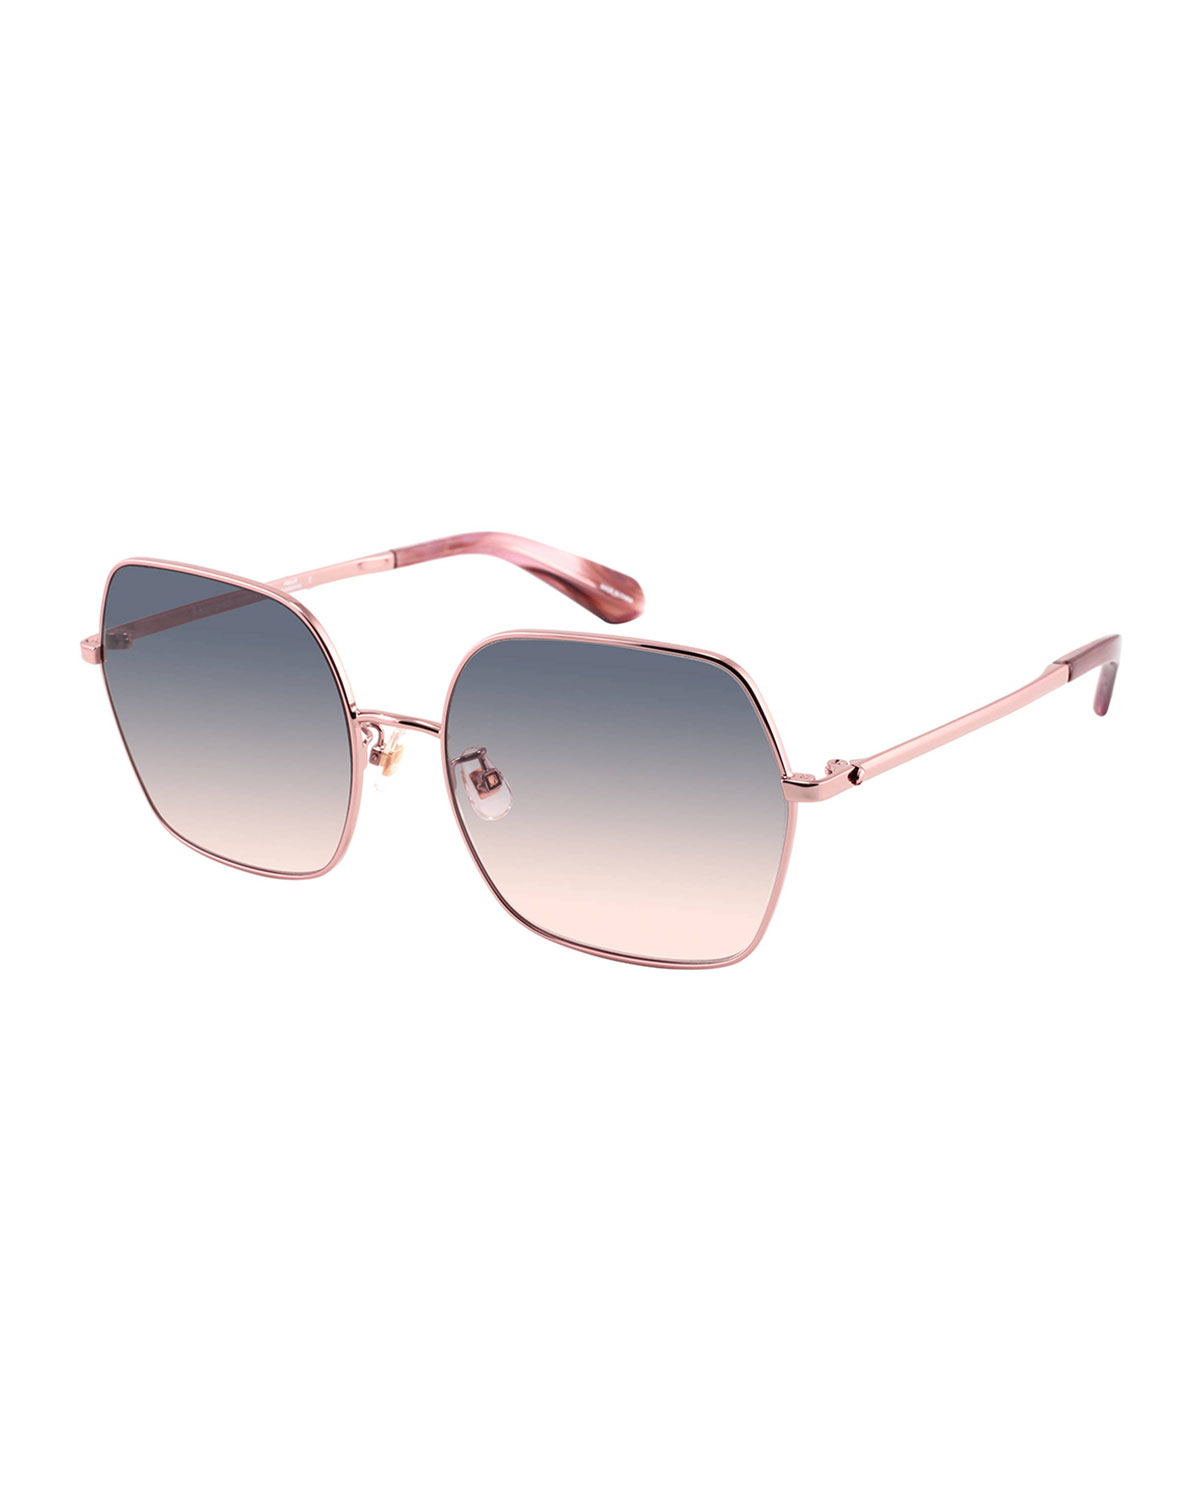 eloygs stainless steel square sunglasses